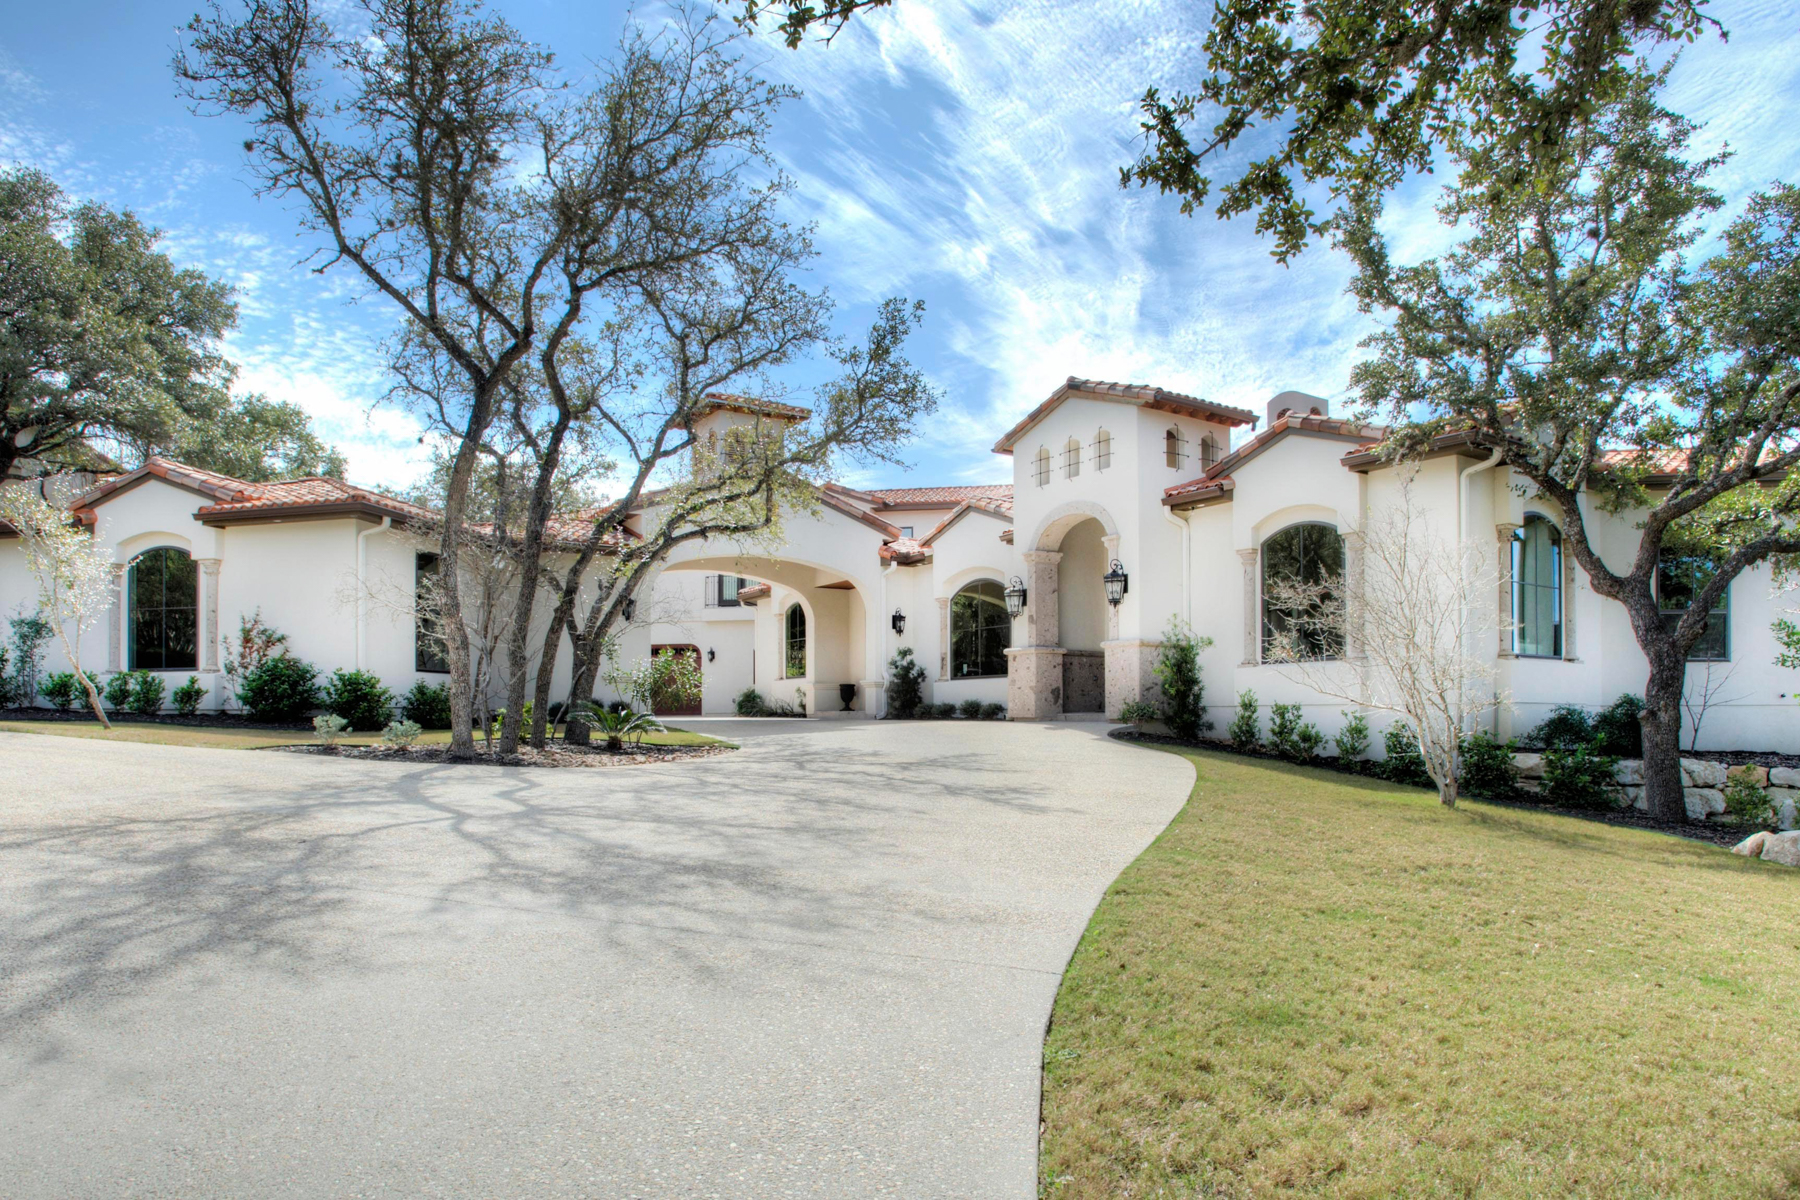 獨棟家庭住宅 為 出售 在 Exquisite Estate in The Dominion 8 Mayborough Ln The Dominion, San Antonio, 德克薩斯州 78257 美國